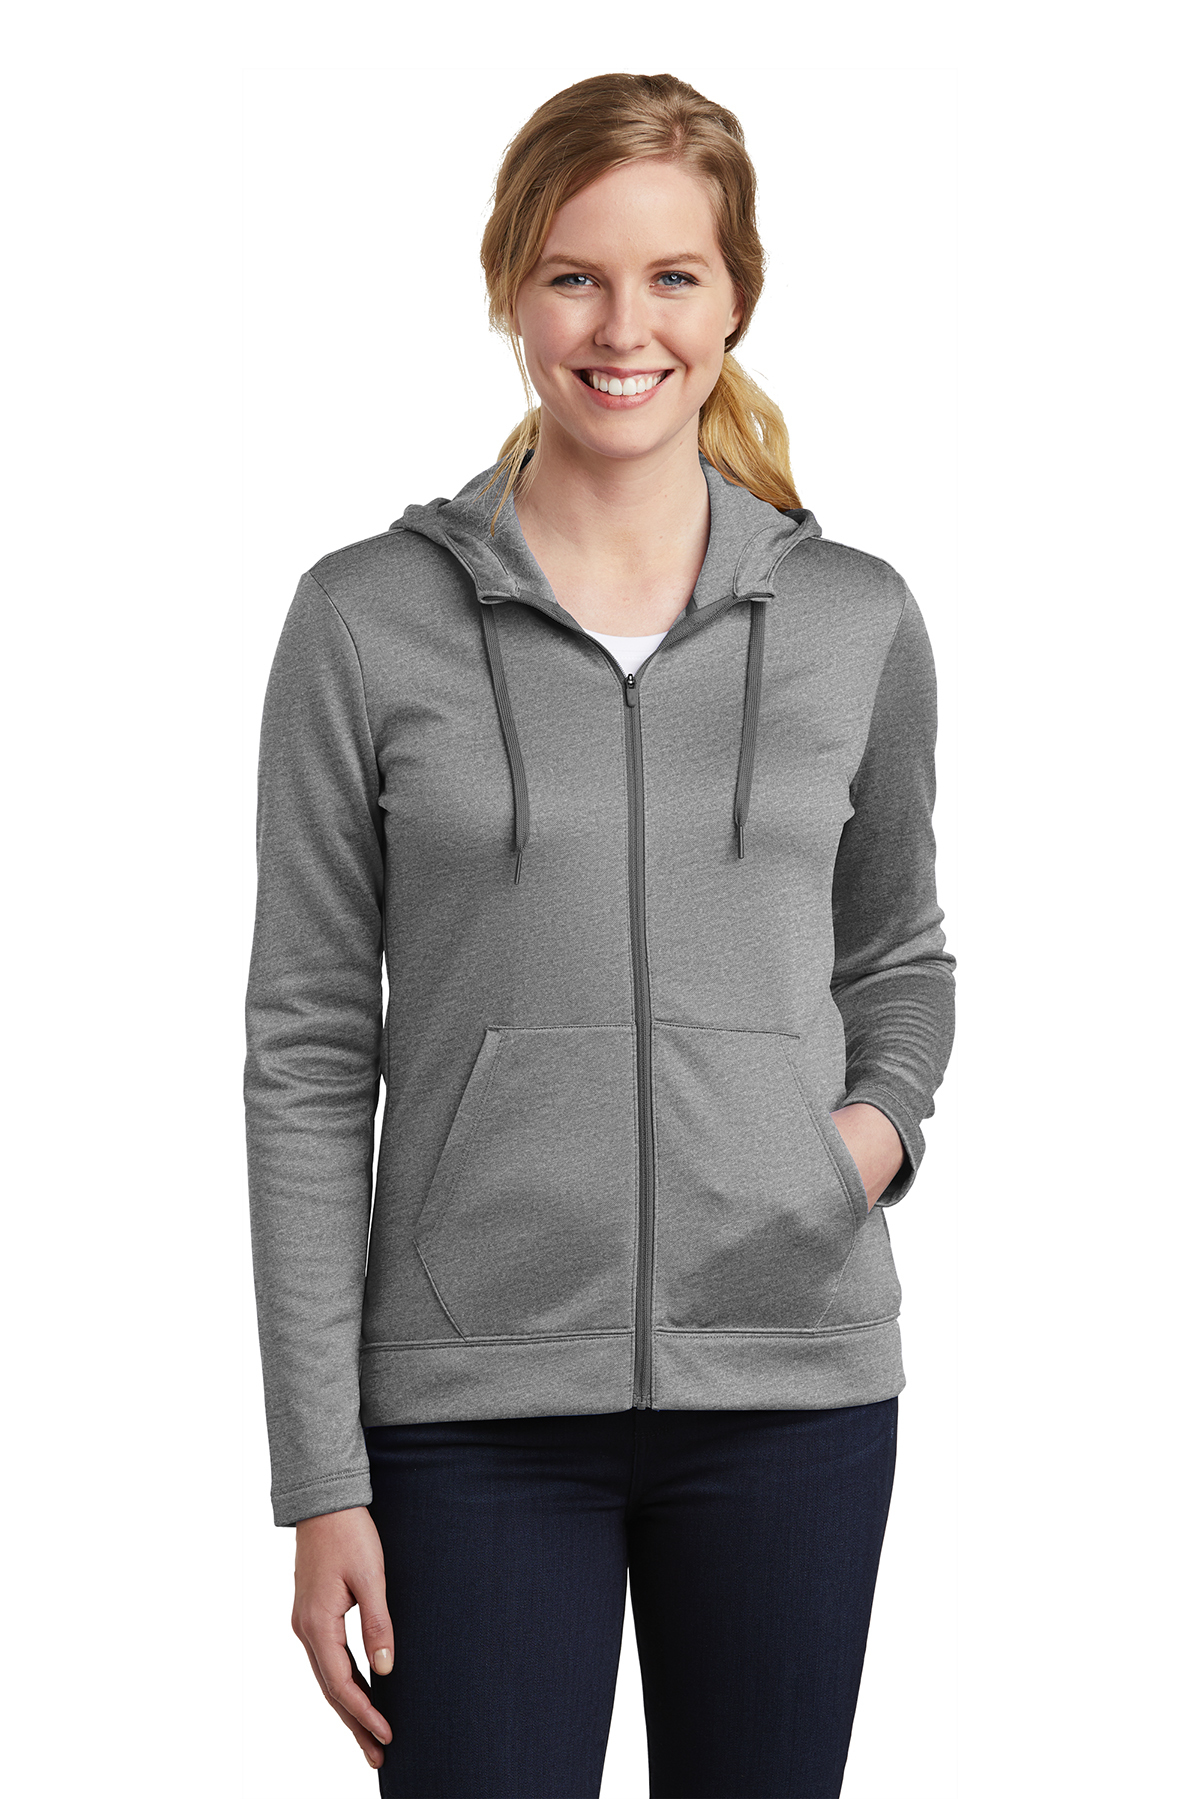 Nike Golf NKAH6264 - Ladies Therma-FIT Full Zip Fleece ...